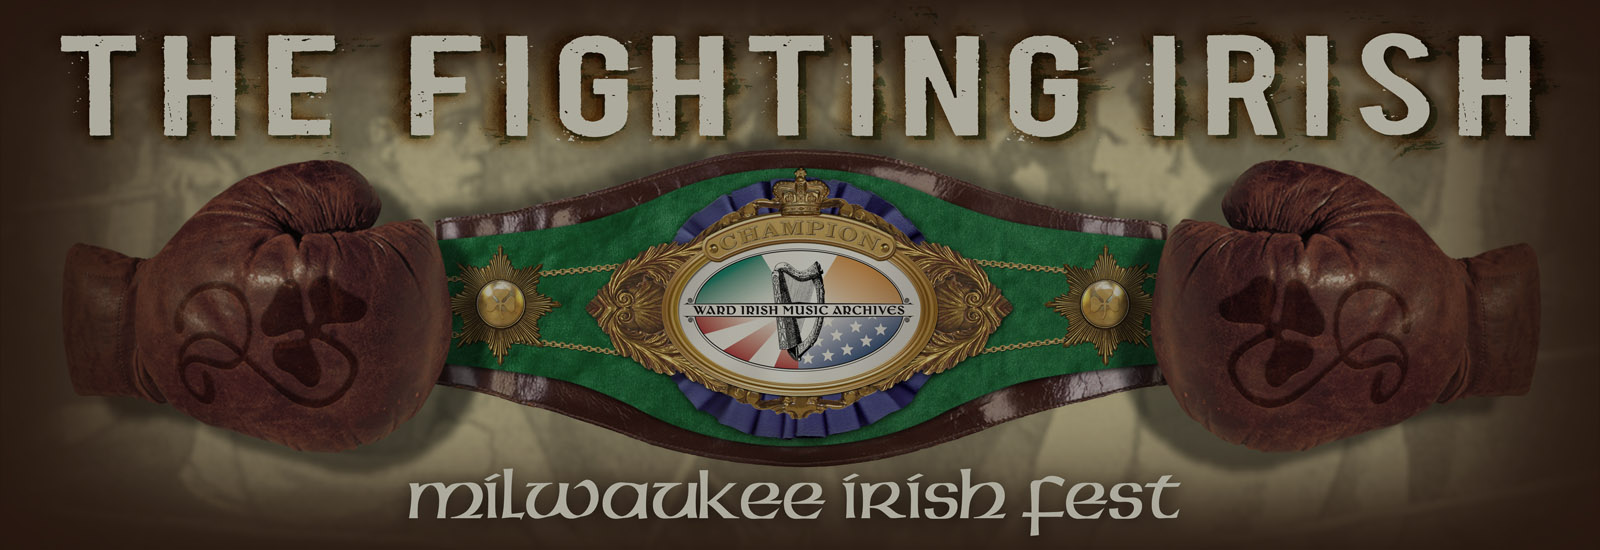 The Fighting Irish Boxing Exhibit